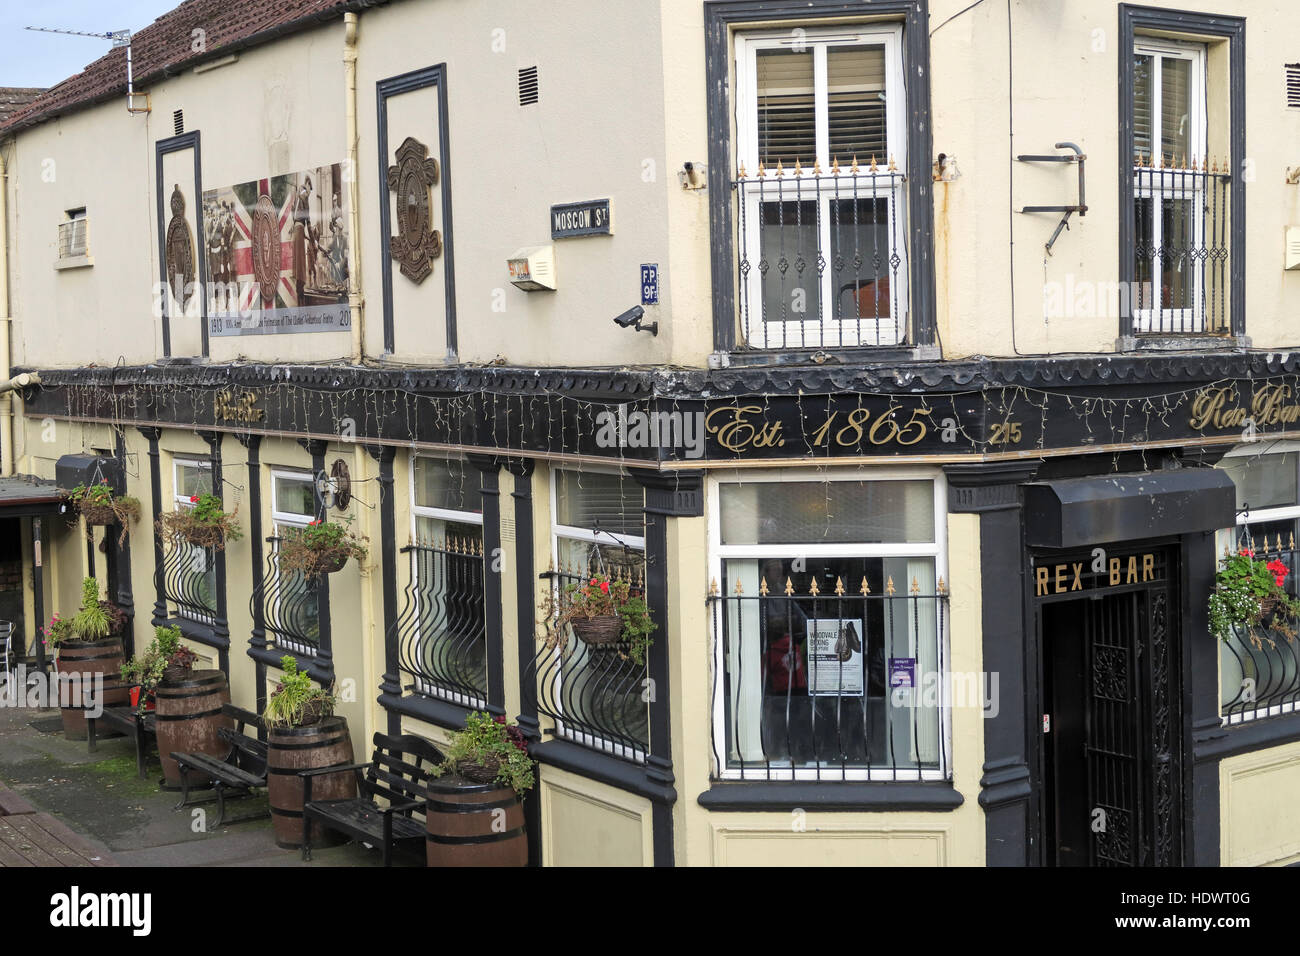 Moscow st, Rex Bar, Shankill Road West Belfast,Northern Ireland,UK - Stock Image